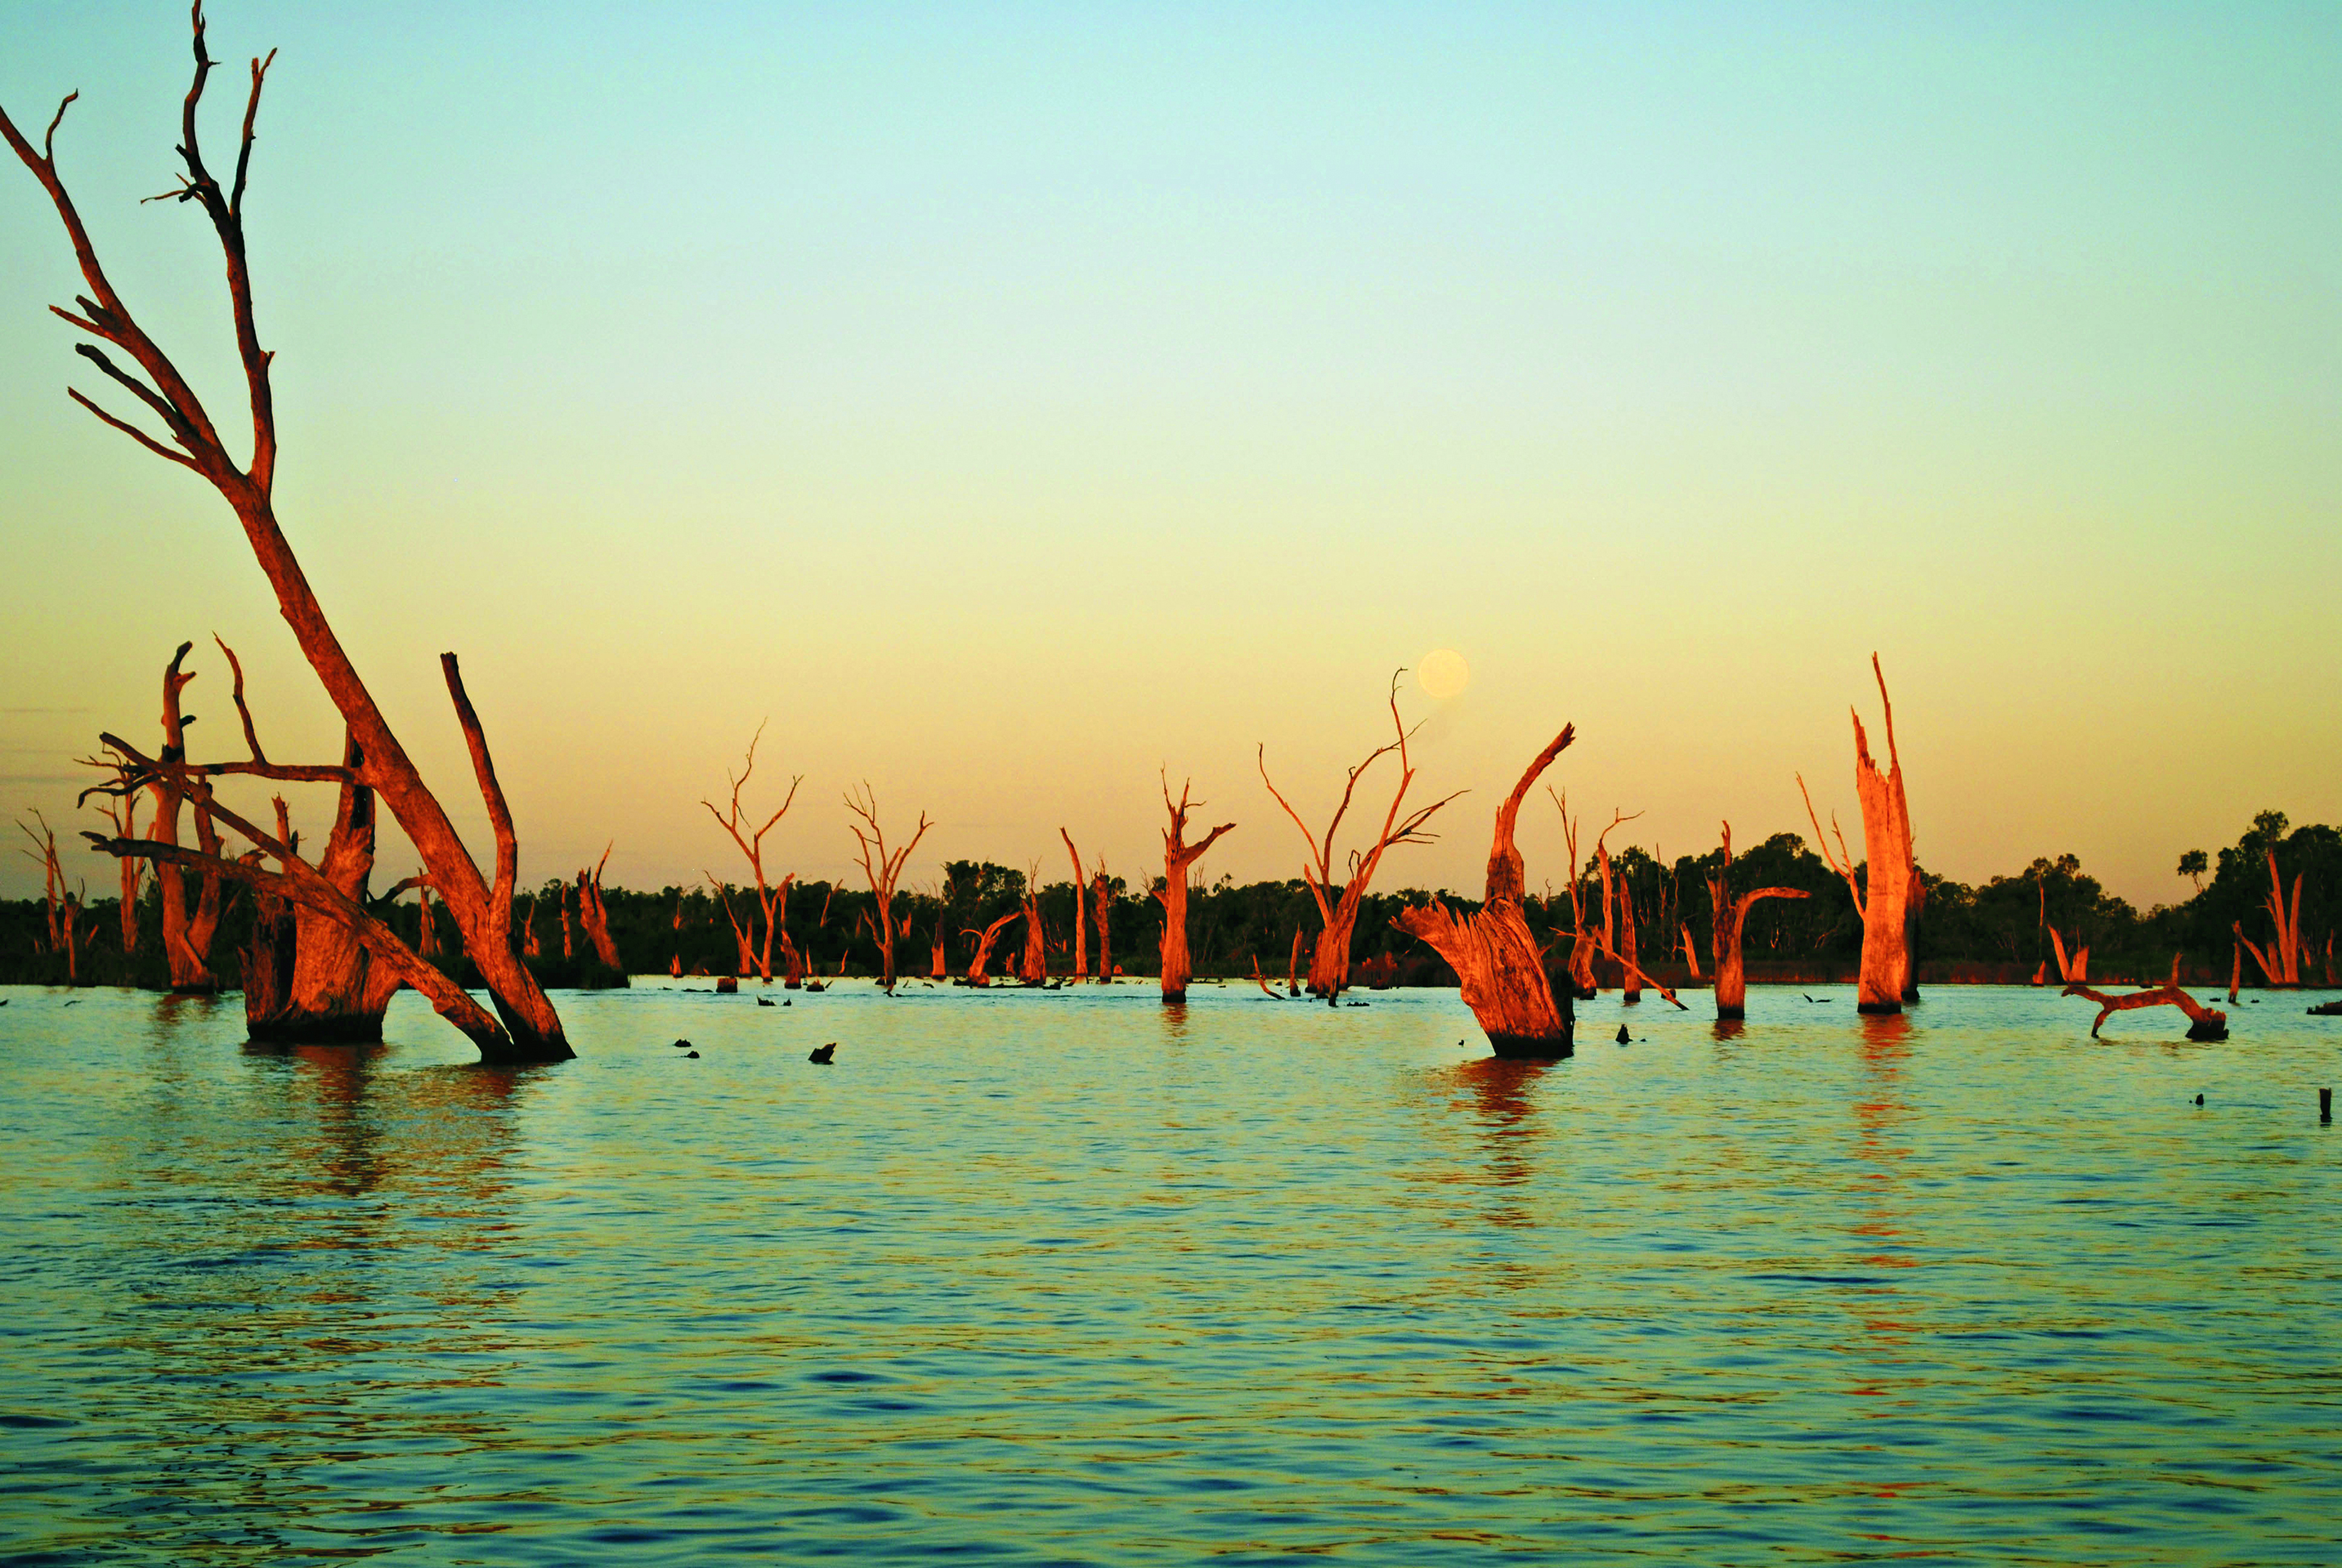 JANUARY_-_Image_for_Damian_Drum_Calendar_Ty_Sutherland_Nagambie_Lake_11.09.17.jpg